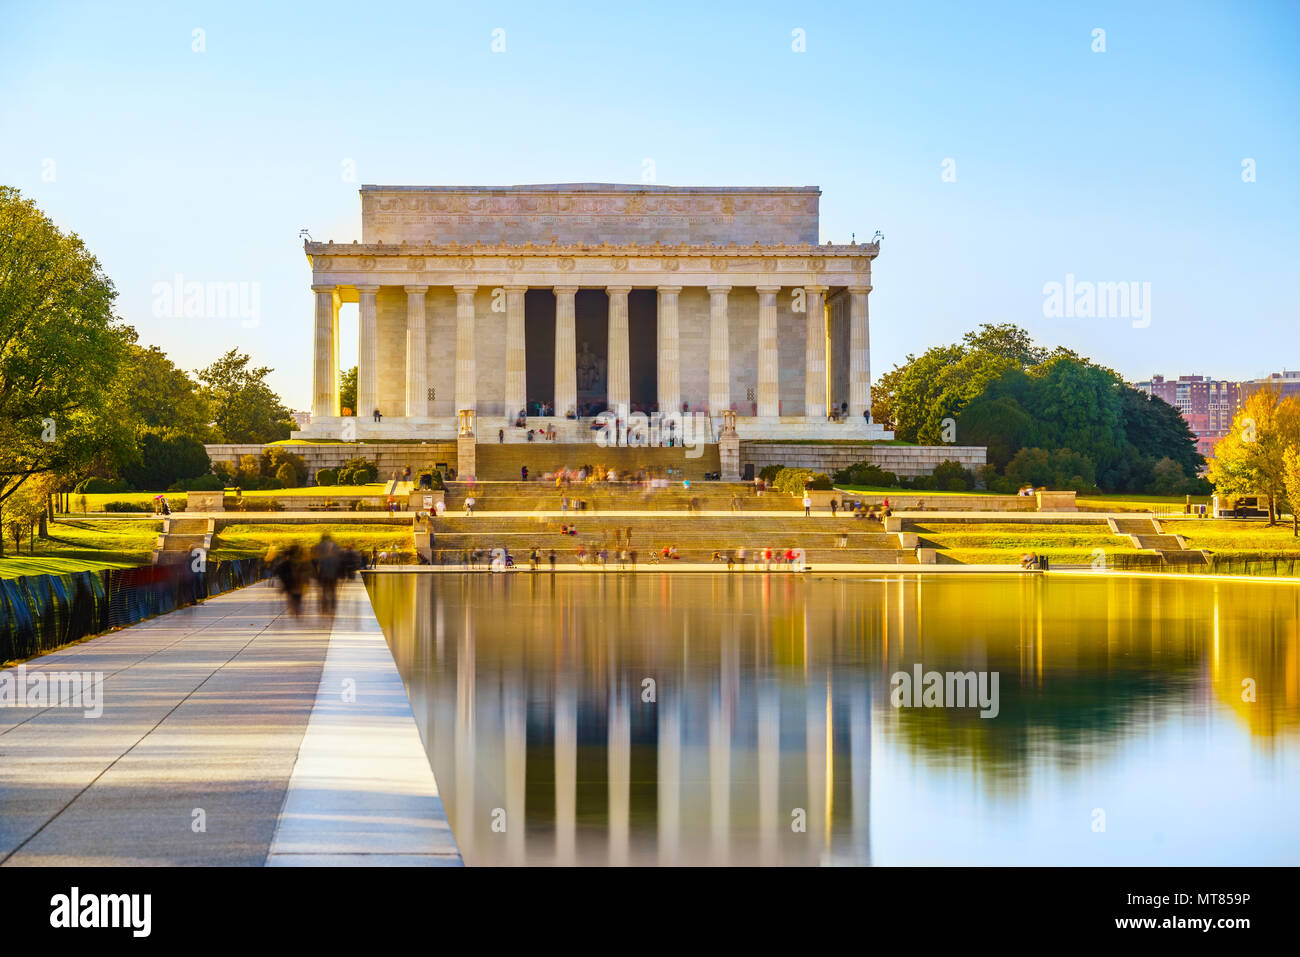 Il Lincoln Memorial a Washington DC Immagini Stock